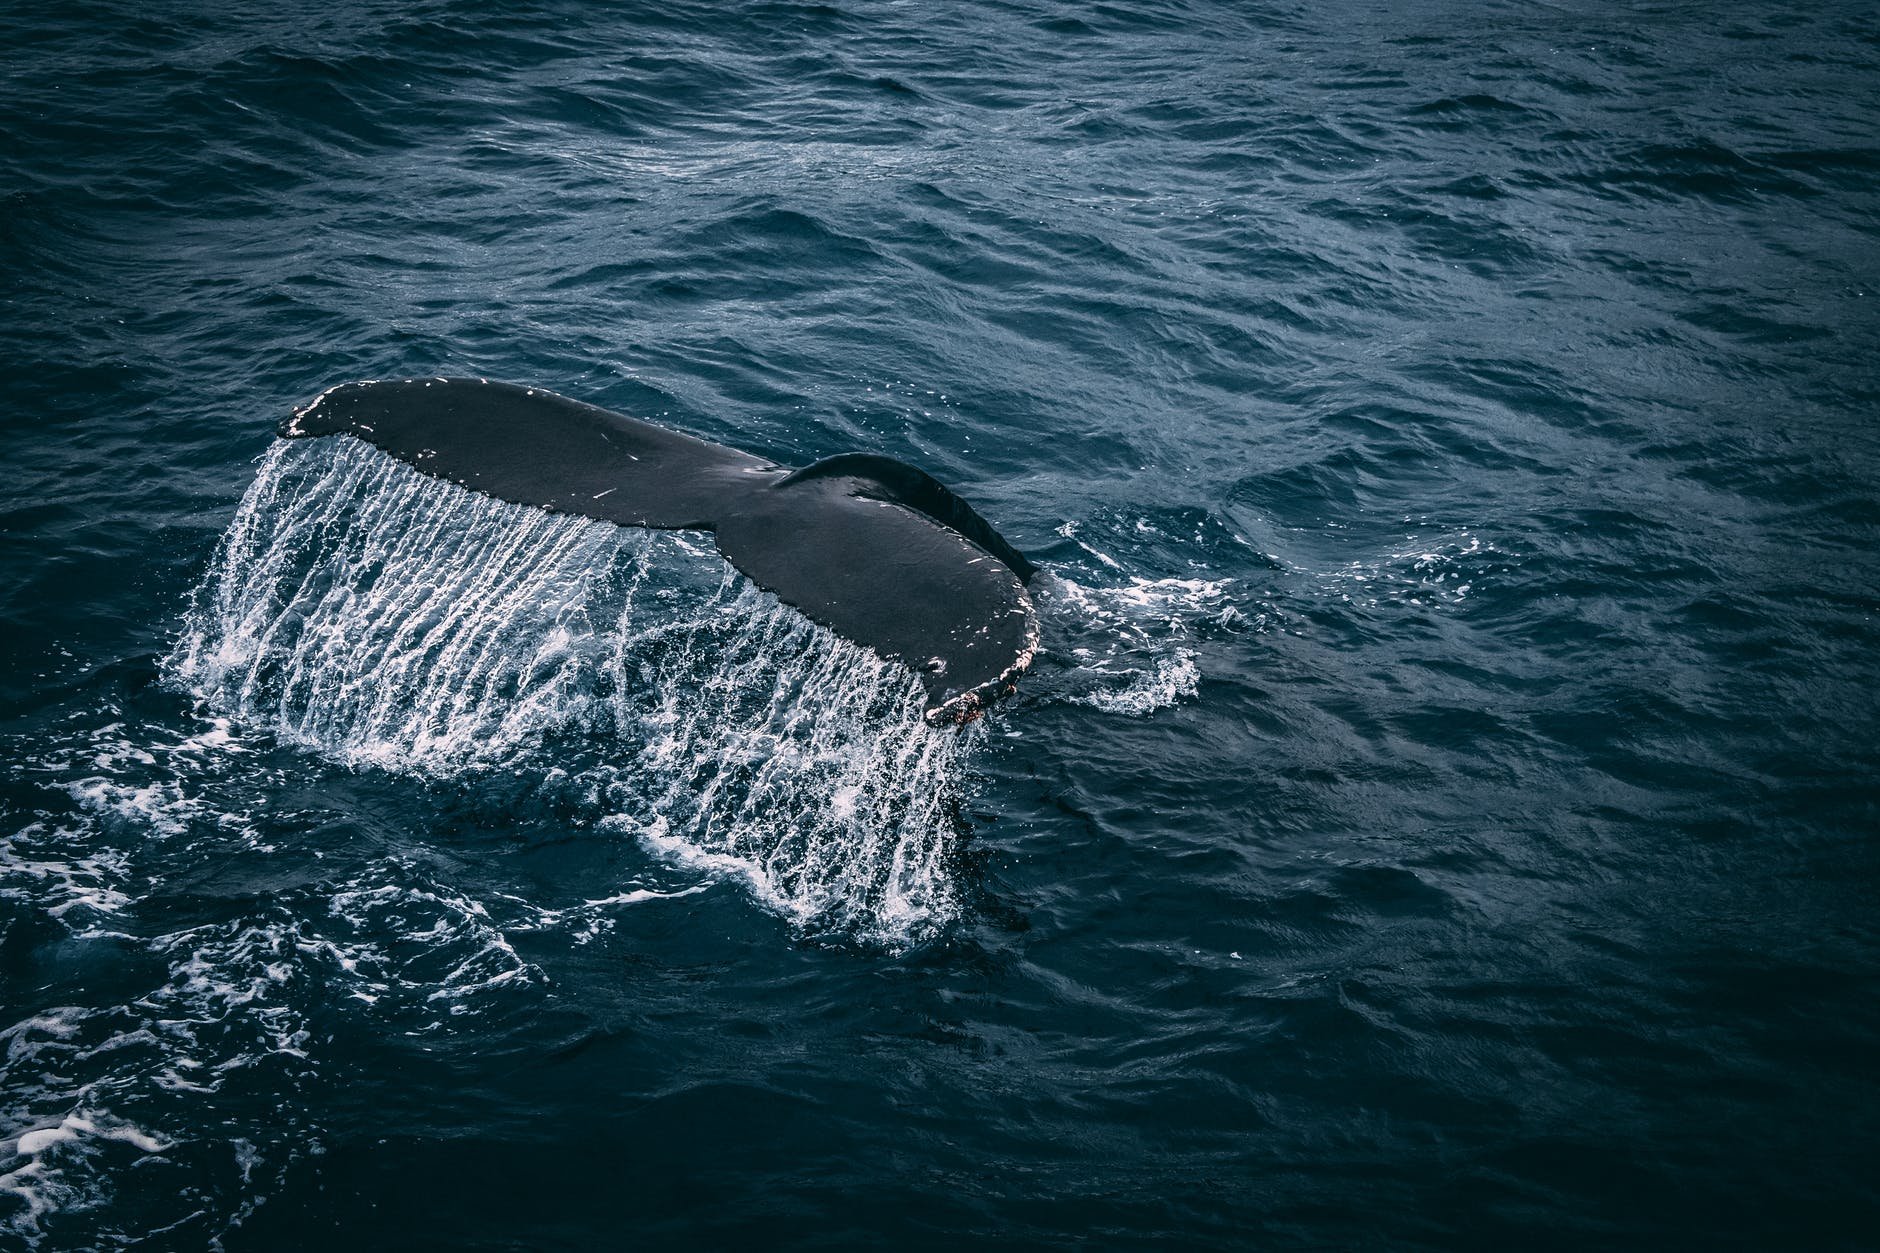 whale tail on water surface